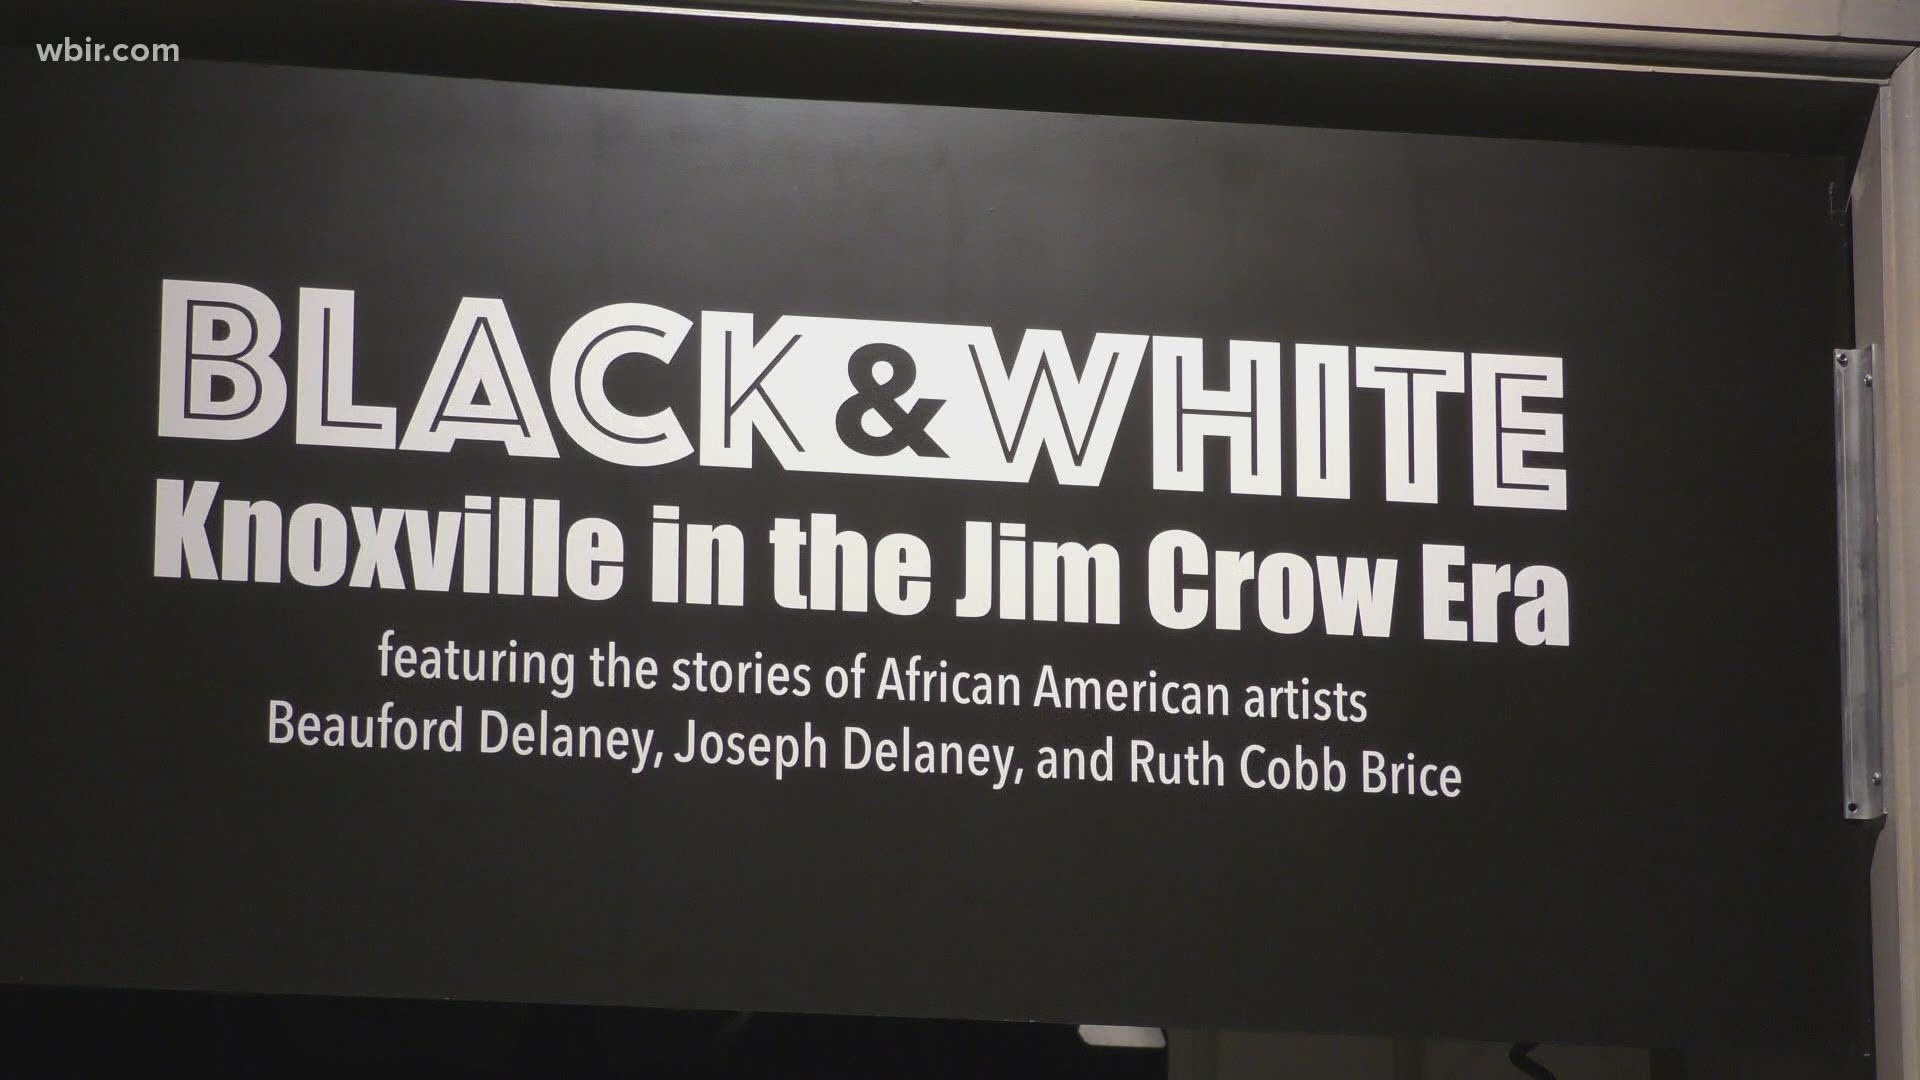 East Tennessee History Center Offering Black And White Knoxville In The Jim Crow Era Exhibit Wbir Com